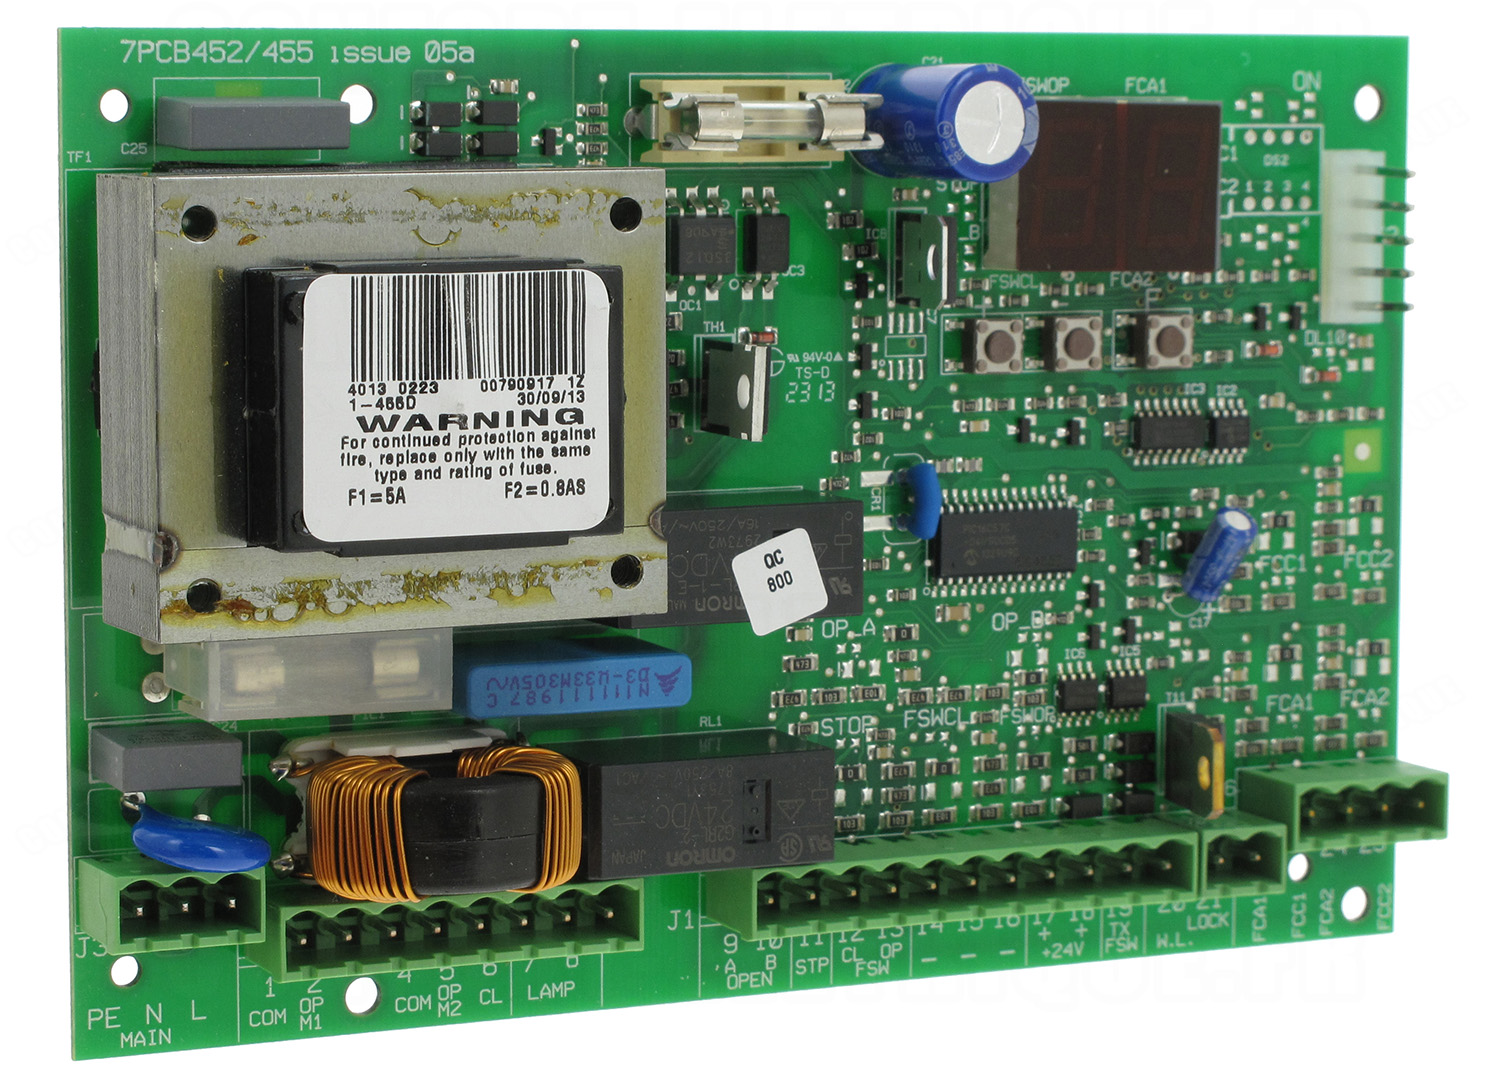 7pcb452 455 issue 05a manual